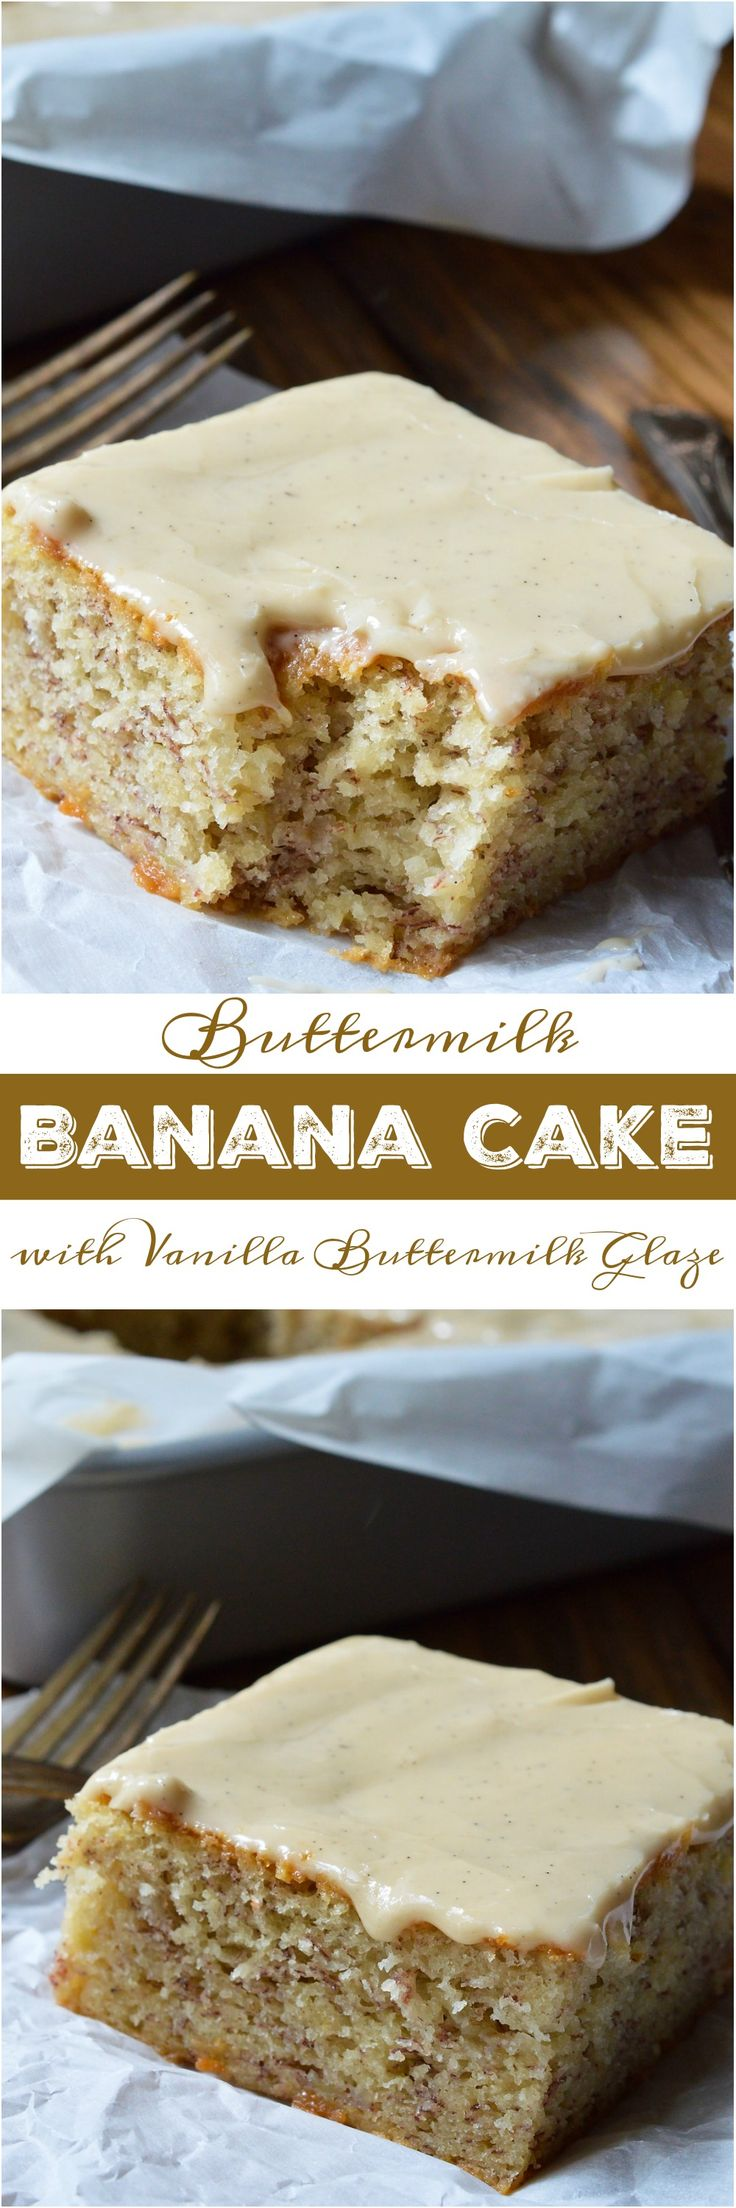 Do you have a few brown overripe bananas hanging out on your counter? If so, this Buttermilk Banana Cake Recipe with Vanilla Buttermilk Glaze must happen! This cake has the great flavor of banana bread with the perfect moist, cakey consistency. The Vanilla Buttermilk Glaze makes this cake the ultimate indulgent dessert! (ad)